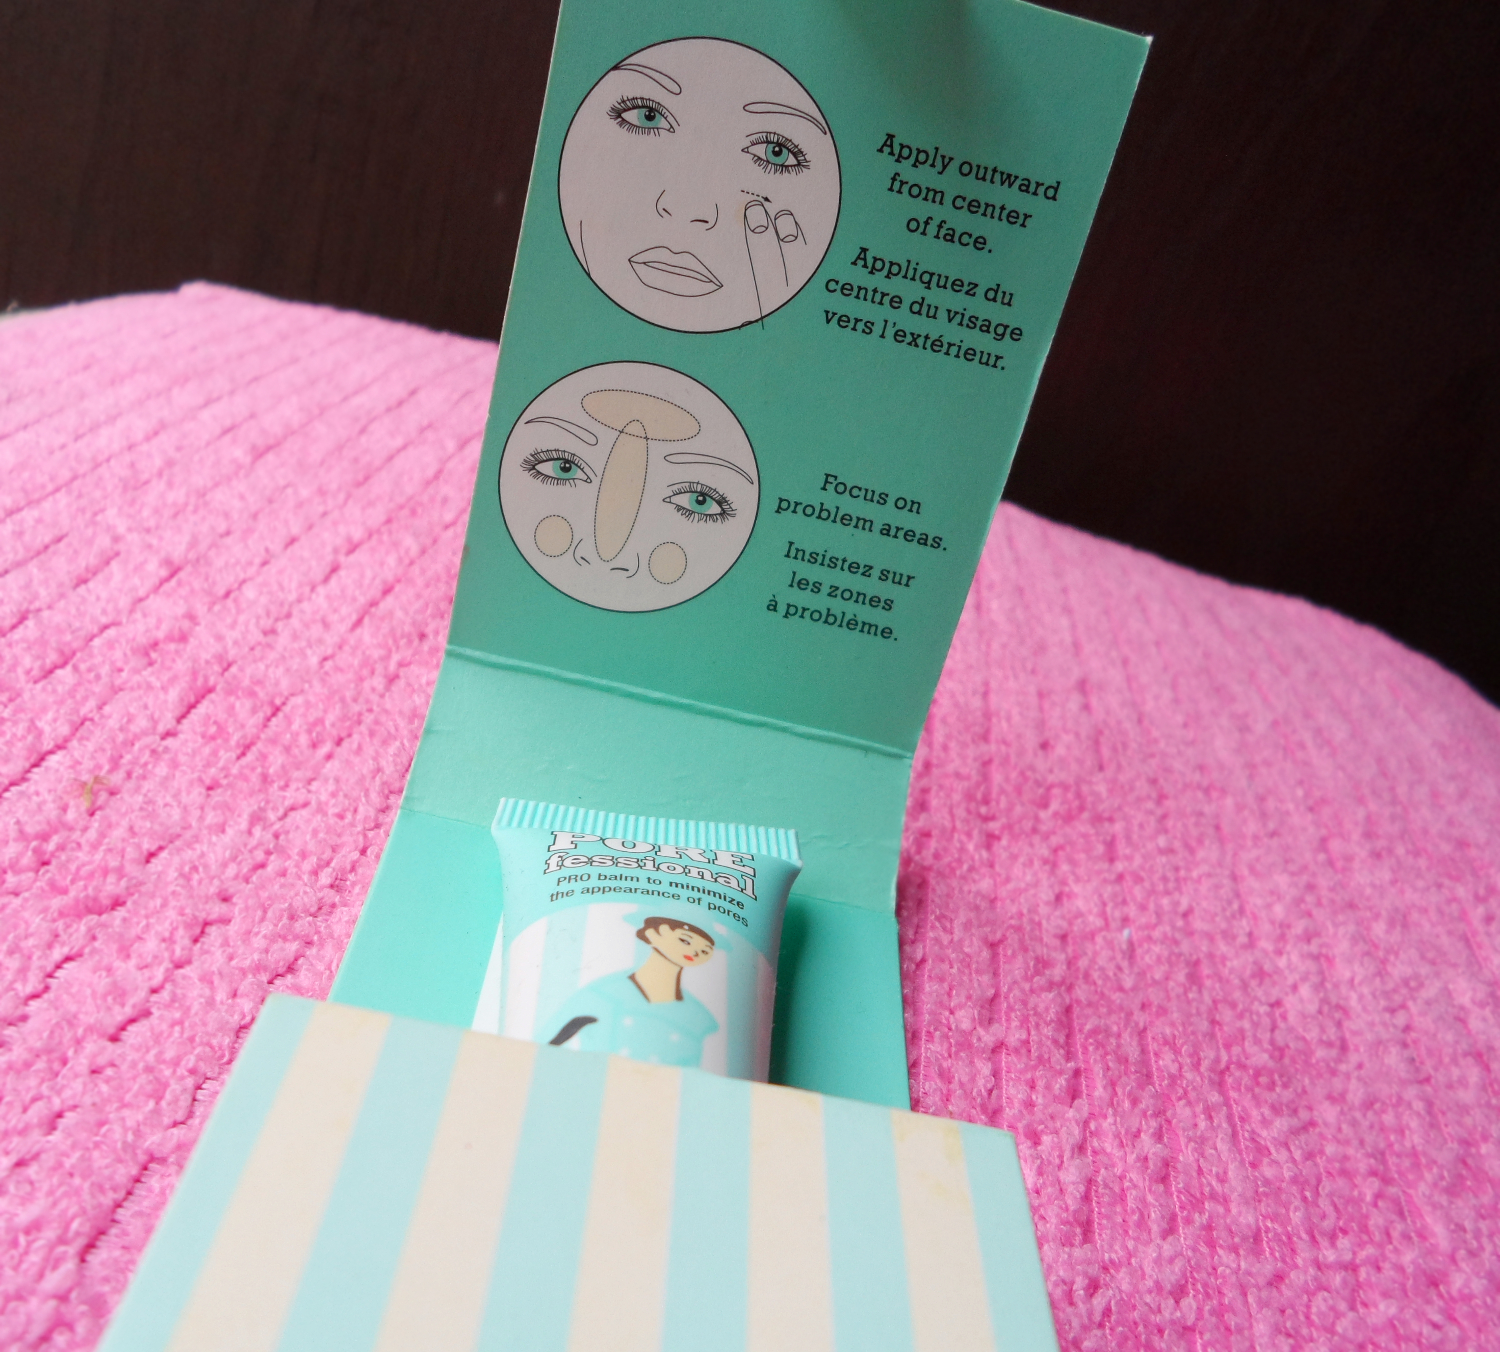 benefit cosmetics review The  POREfessional by Benefit | Review & Swatches  liz breygel january girl blogger